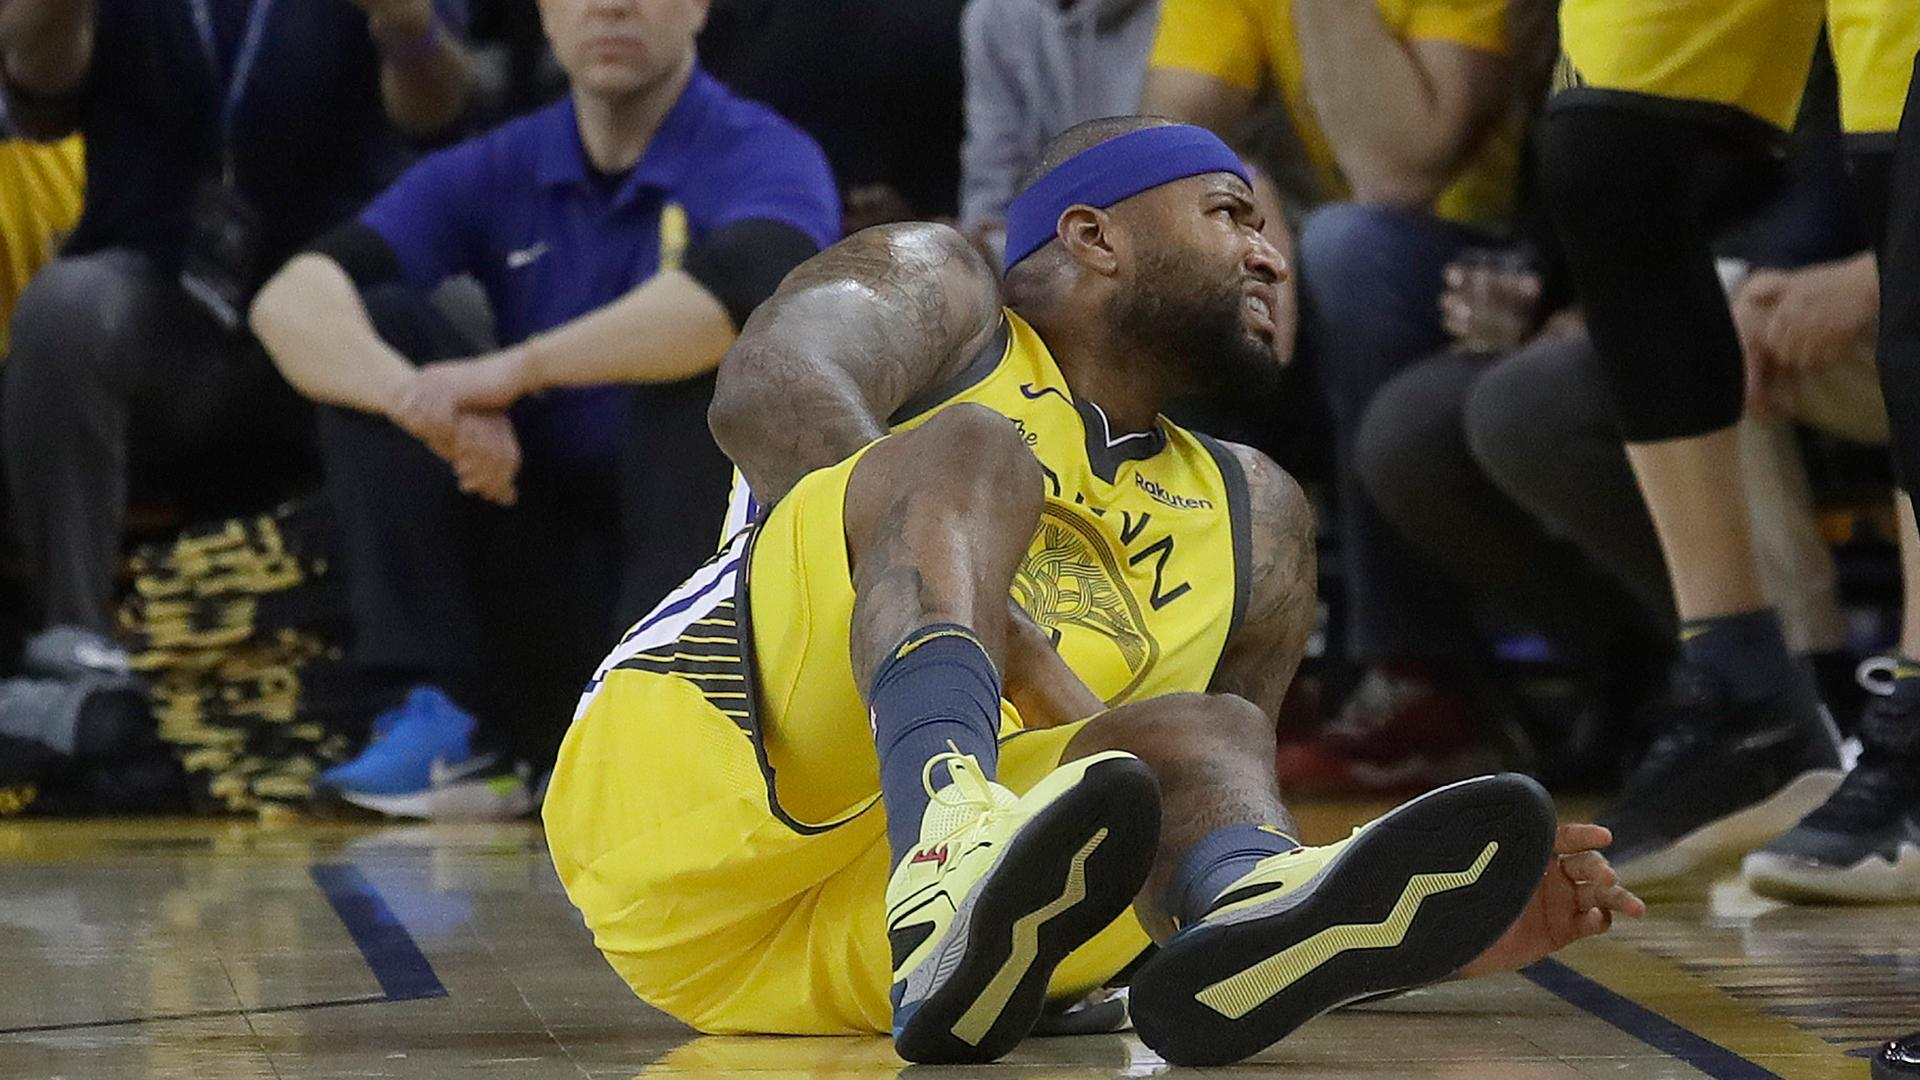 2dbe2a730ec DeMarcus Cousins injury forces Warriors' return to center by committee